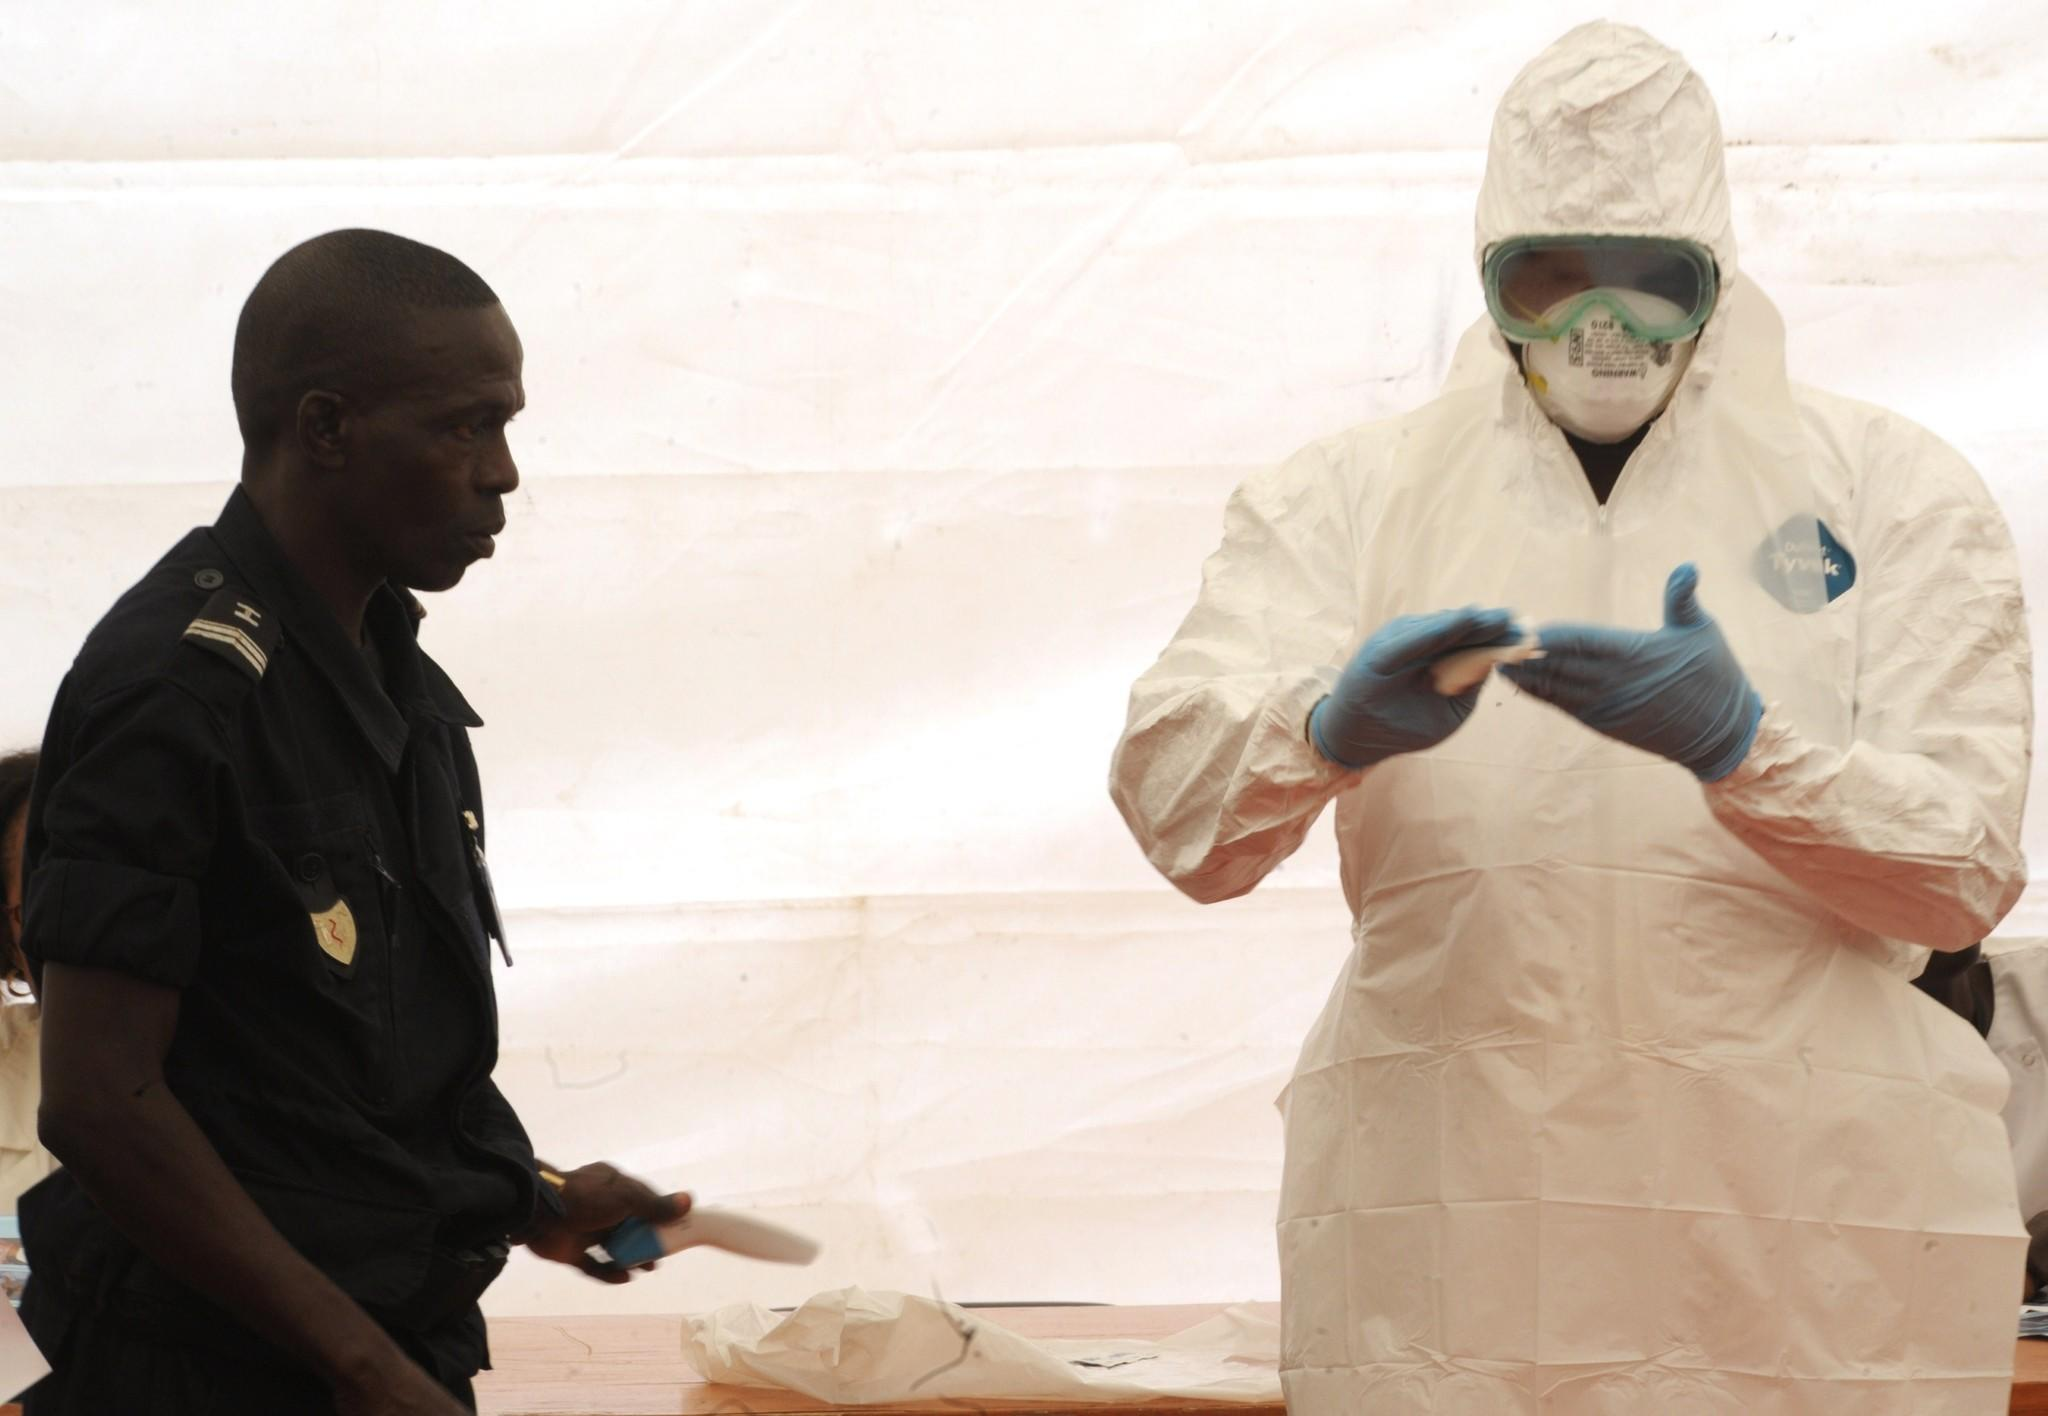 A Senegalese hygienist demonstrates how to protect oneself against the Ebola virus at Dakar airport, during a visit of the Senegalese health minister to check the safety measures put in place.